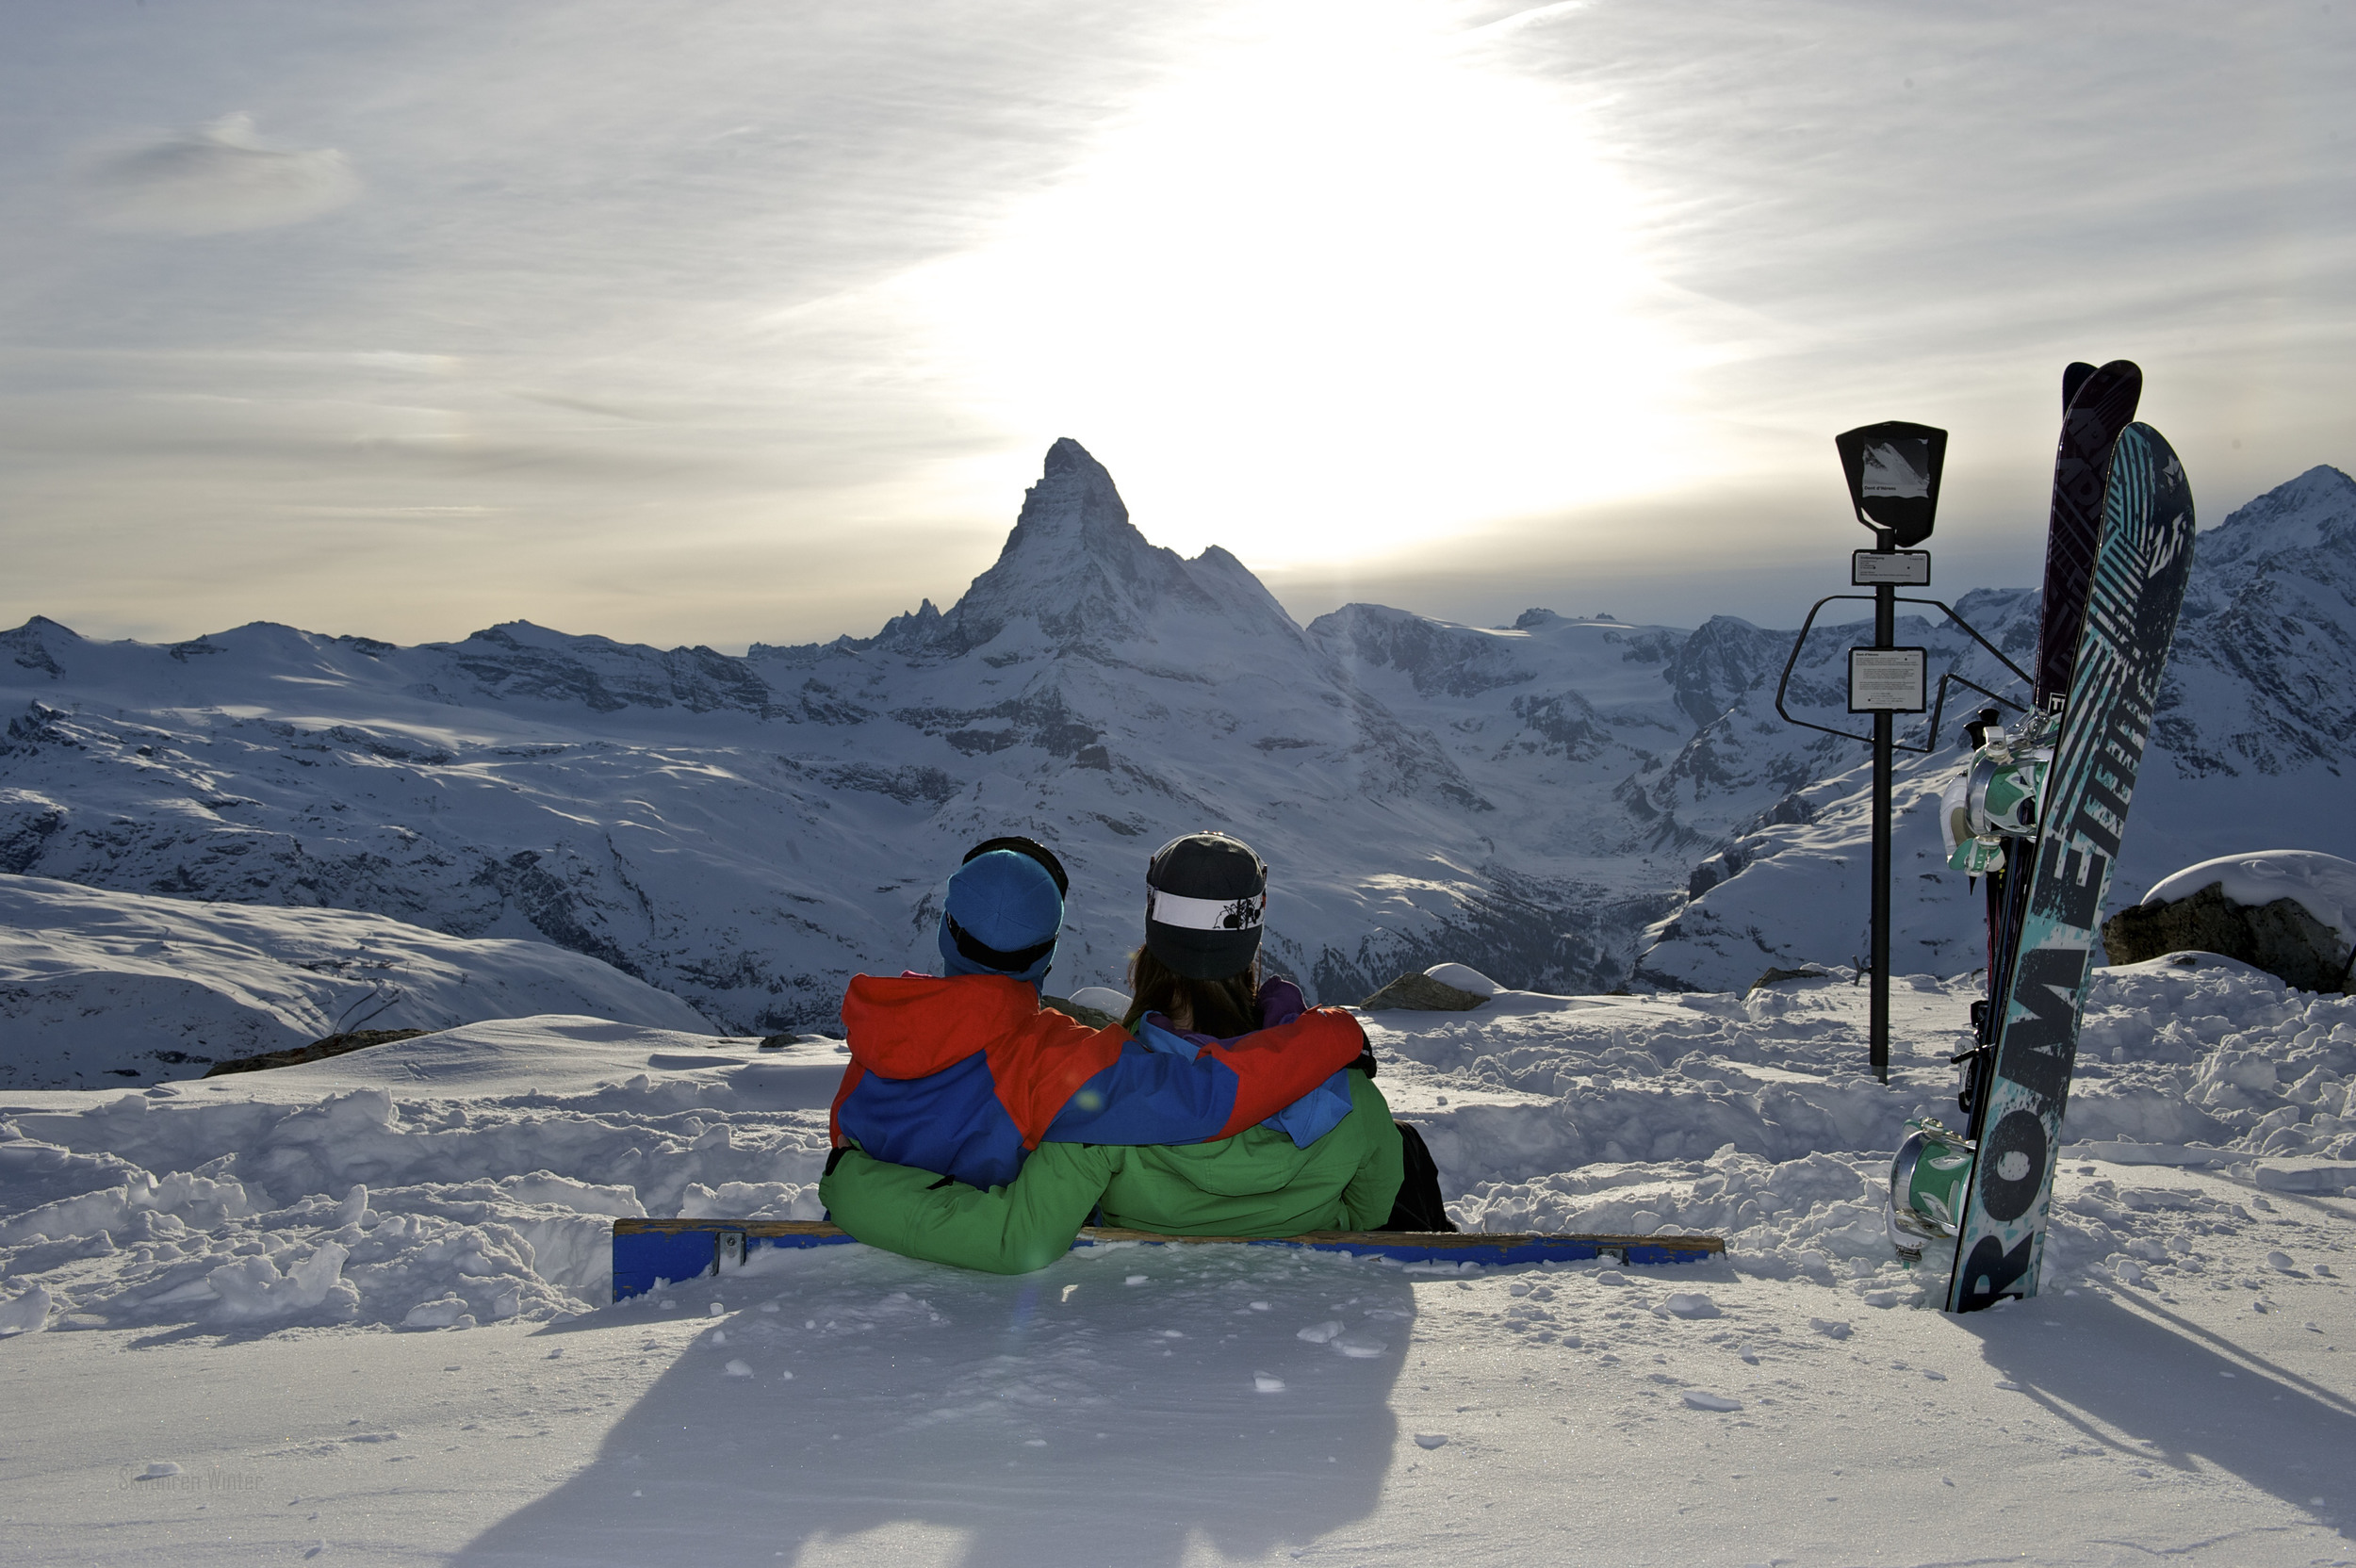 Switzerlands most famous mountain the Matterhorn (© Zermatt Tourism / Michael Portmann)